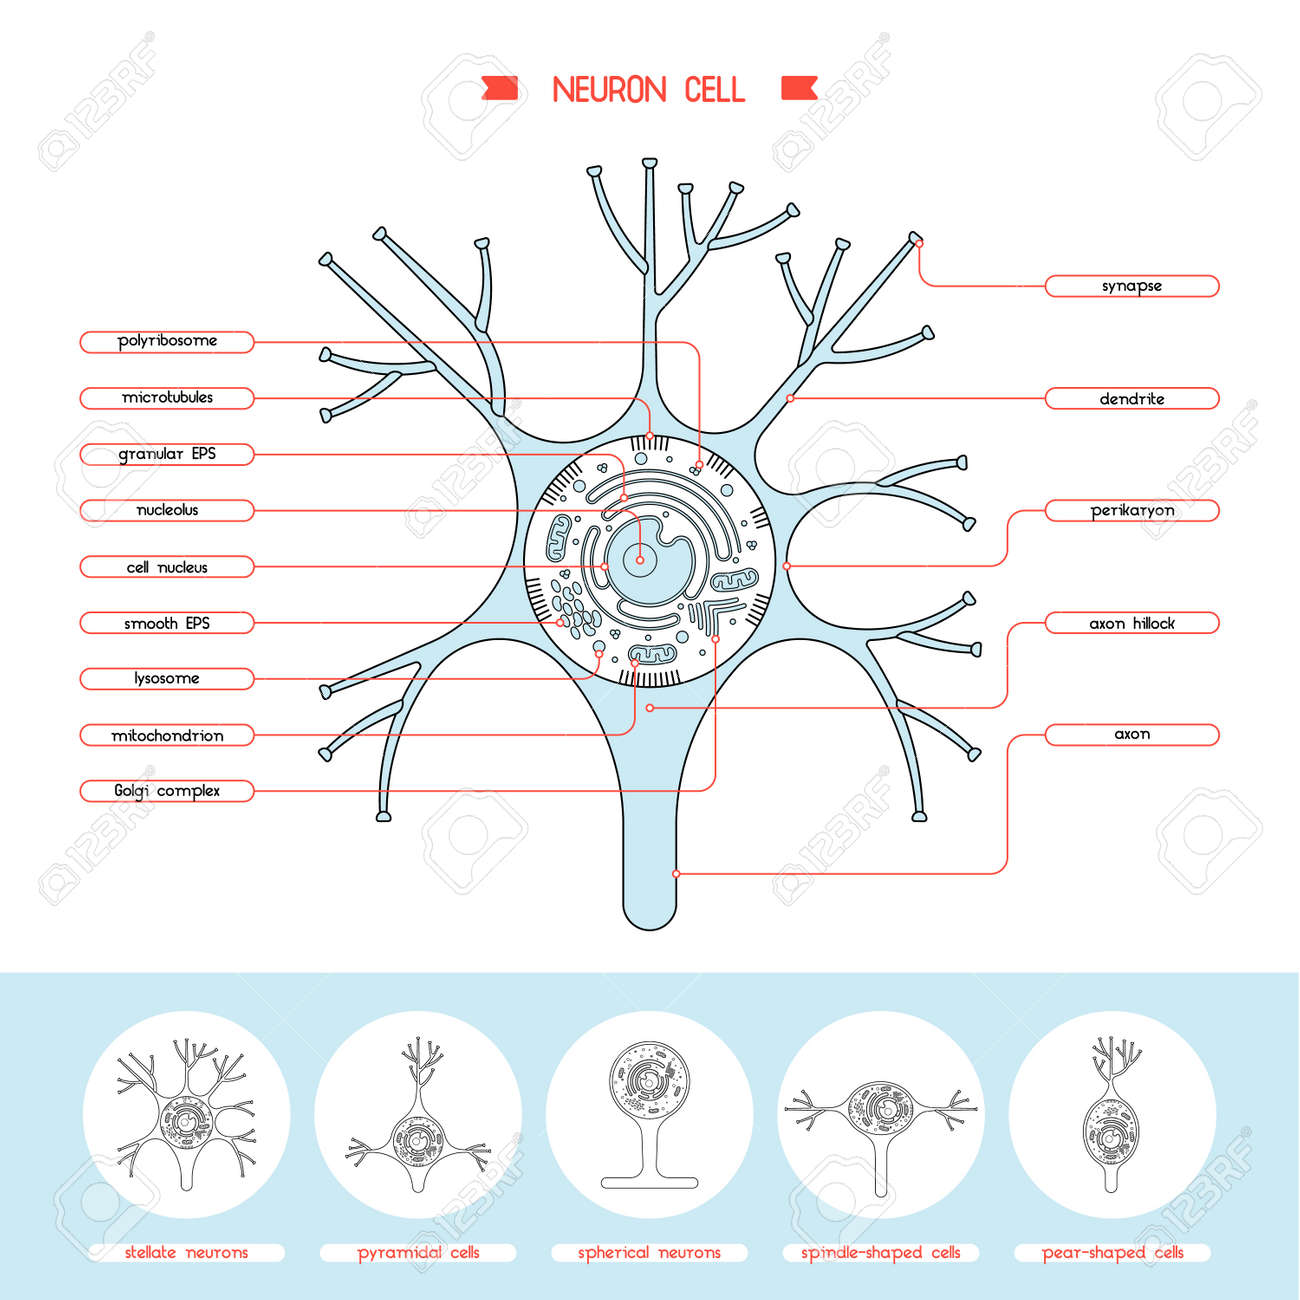 Isolated neurone cell biology diagram neurone cell anatomy isolated neurone cell biology diagram neurone cell anatomy structure vector illustration axon cell body ccuart Choice Image